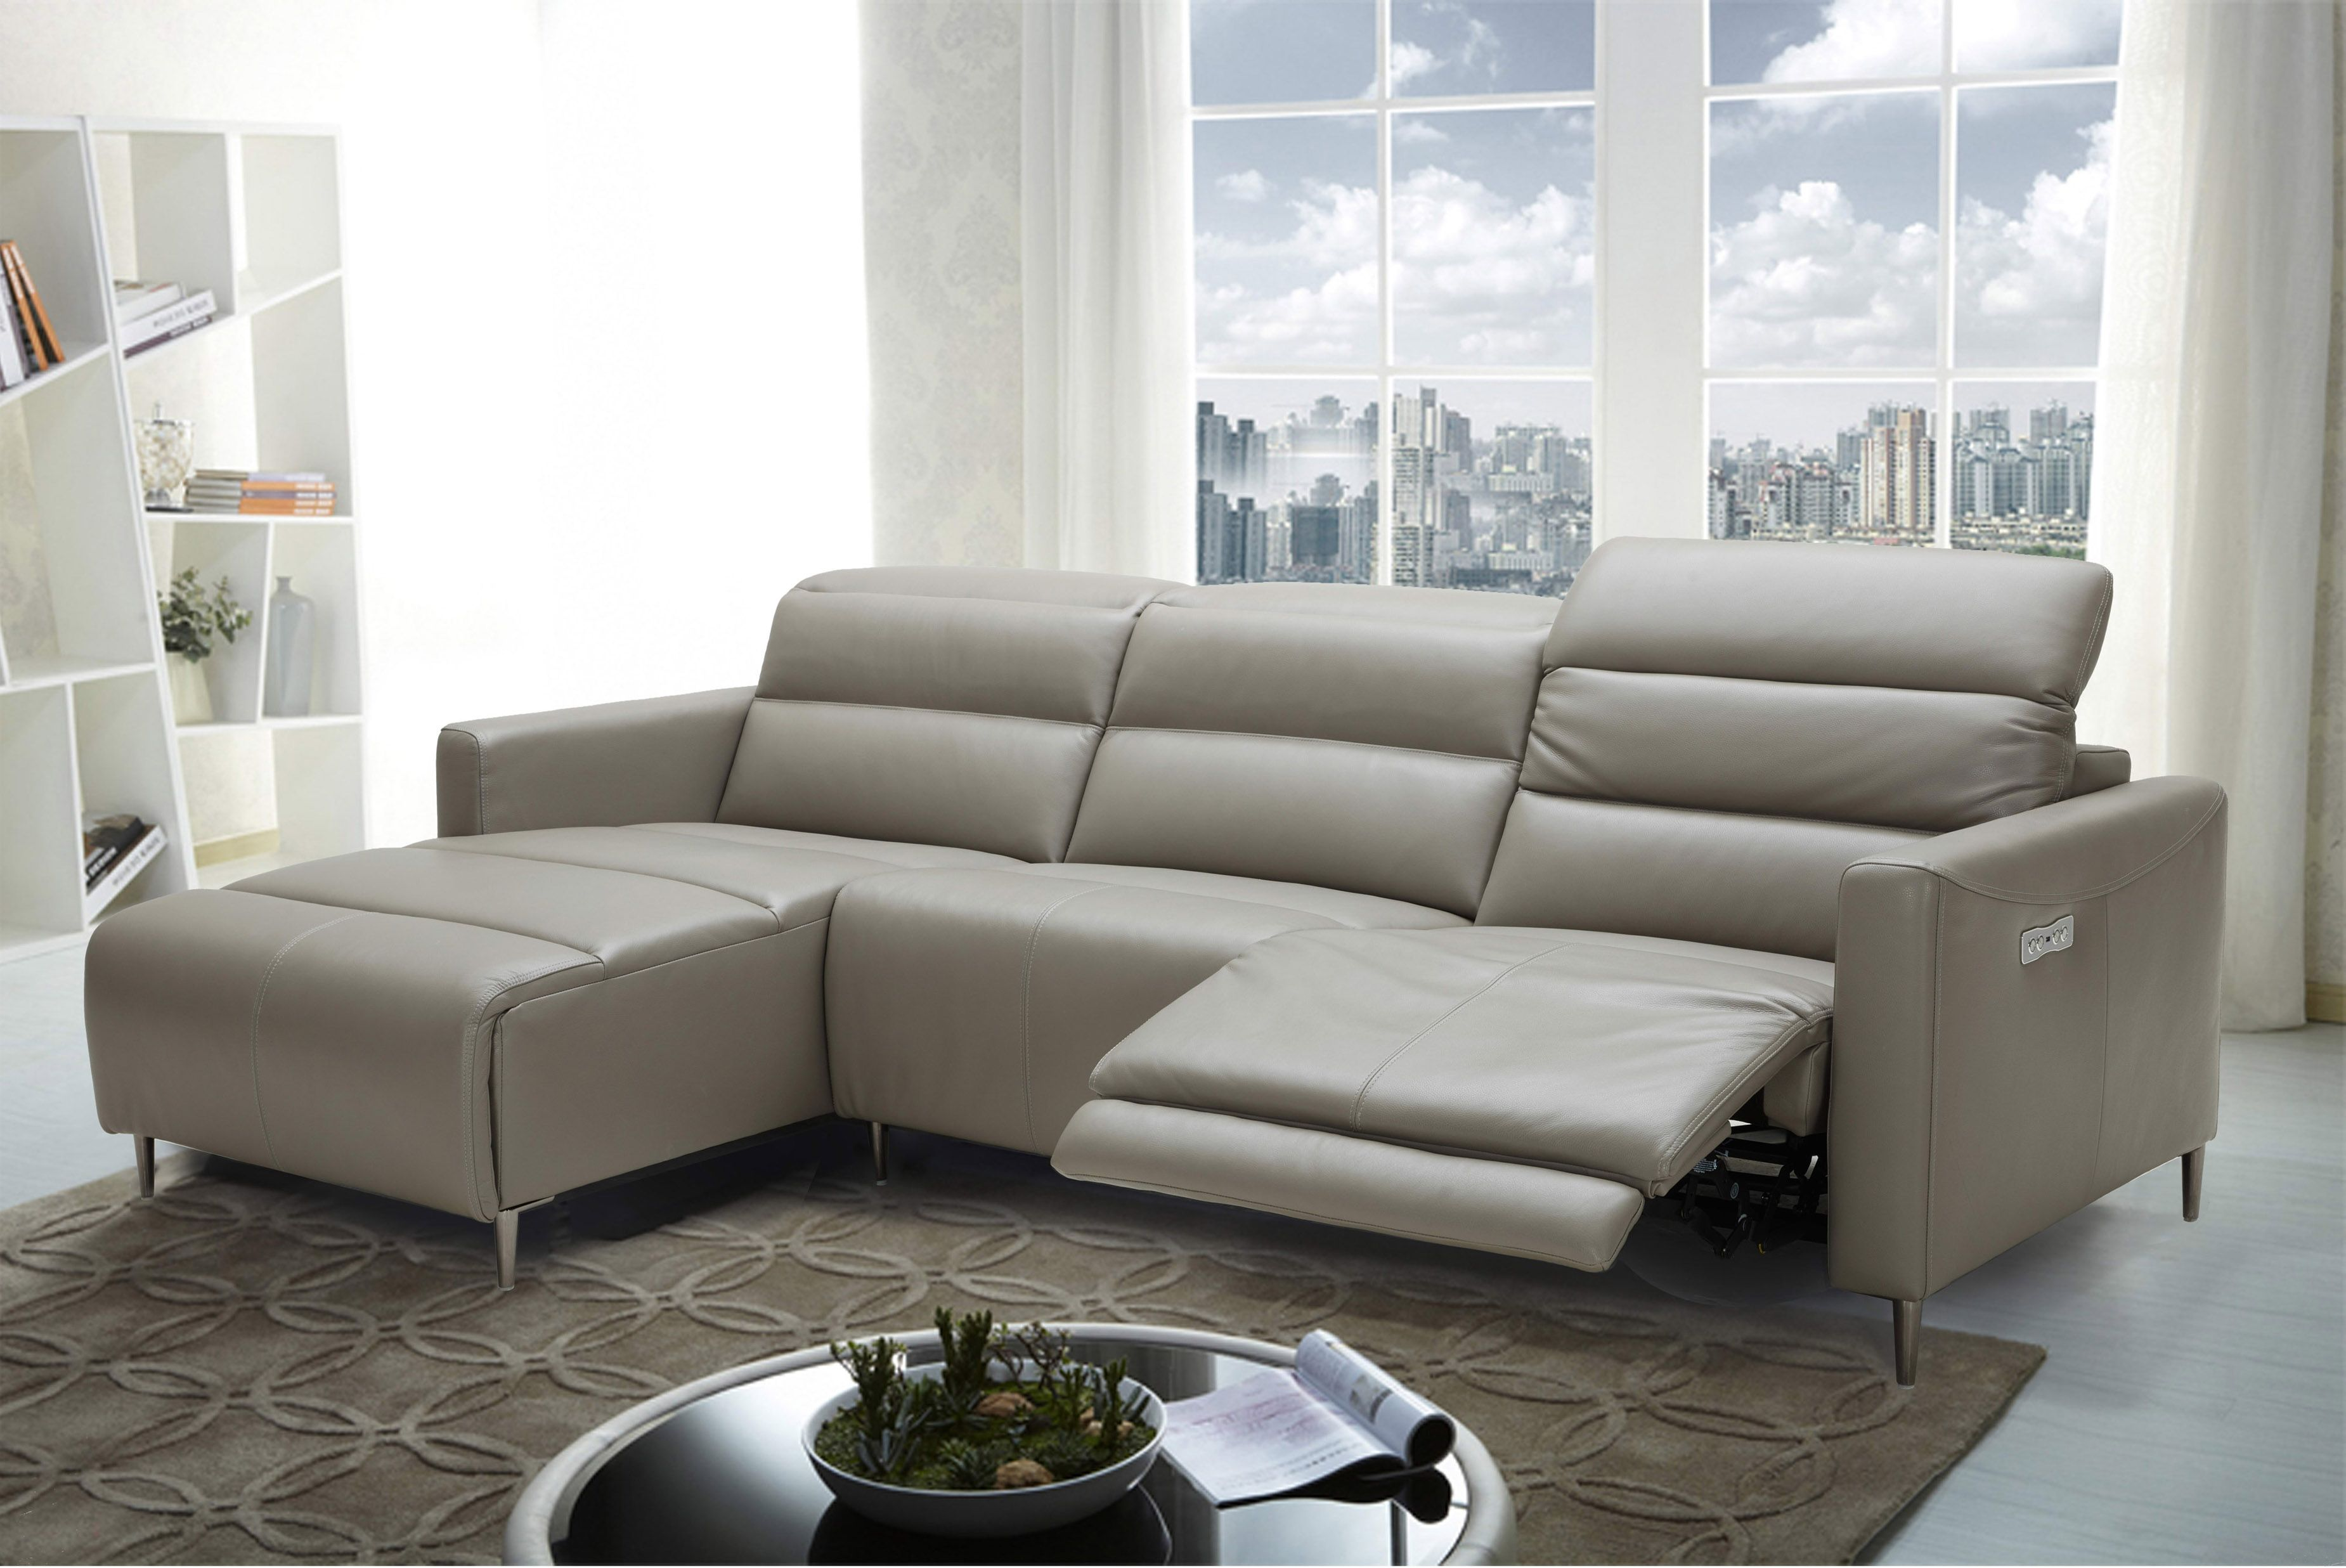 Exclusive Italian Leather Living Room Furniture Leather Living Room Furniture Living Room Leather Italian Leather Sectional Sofa